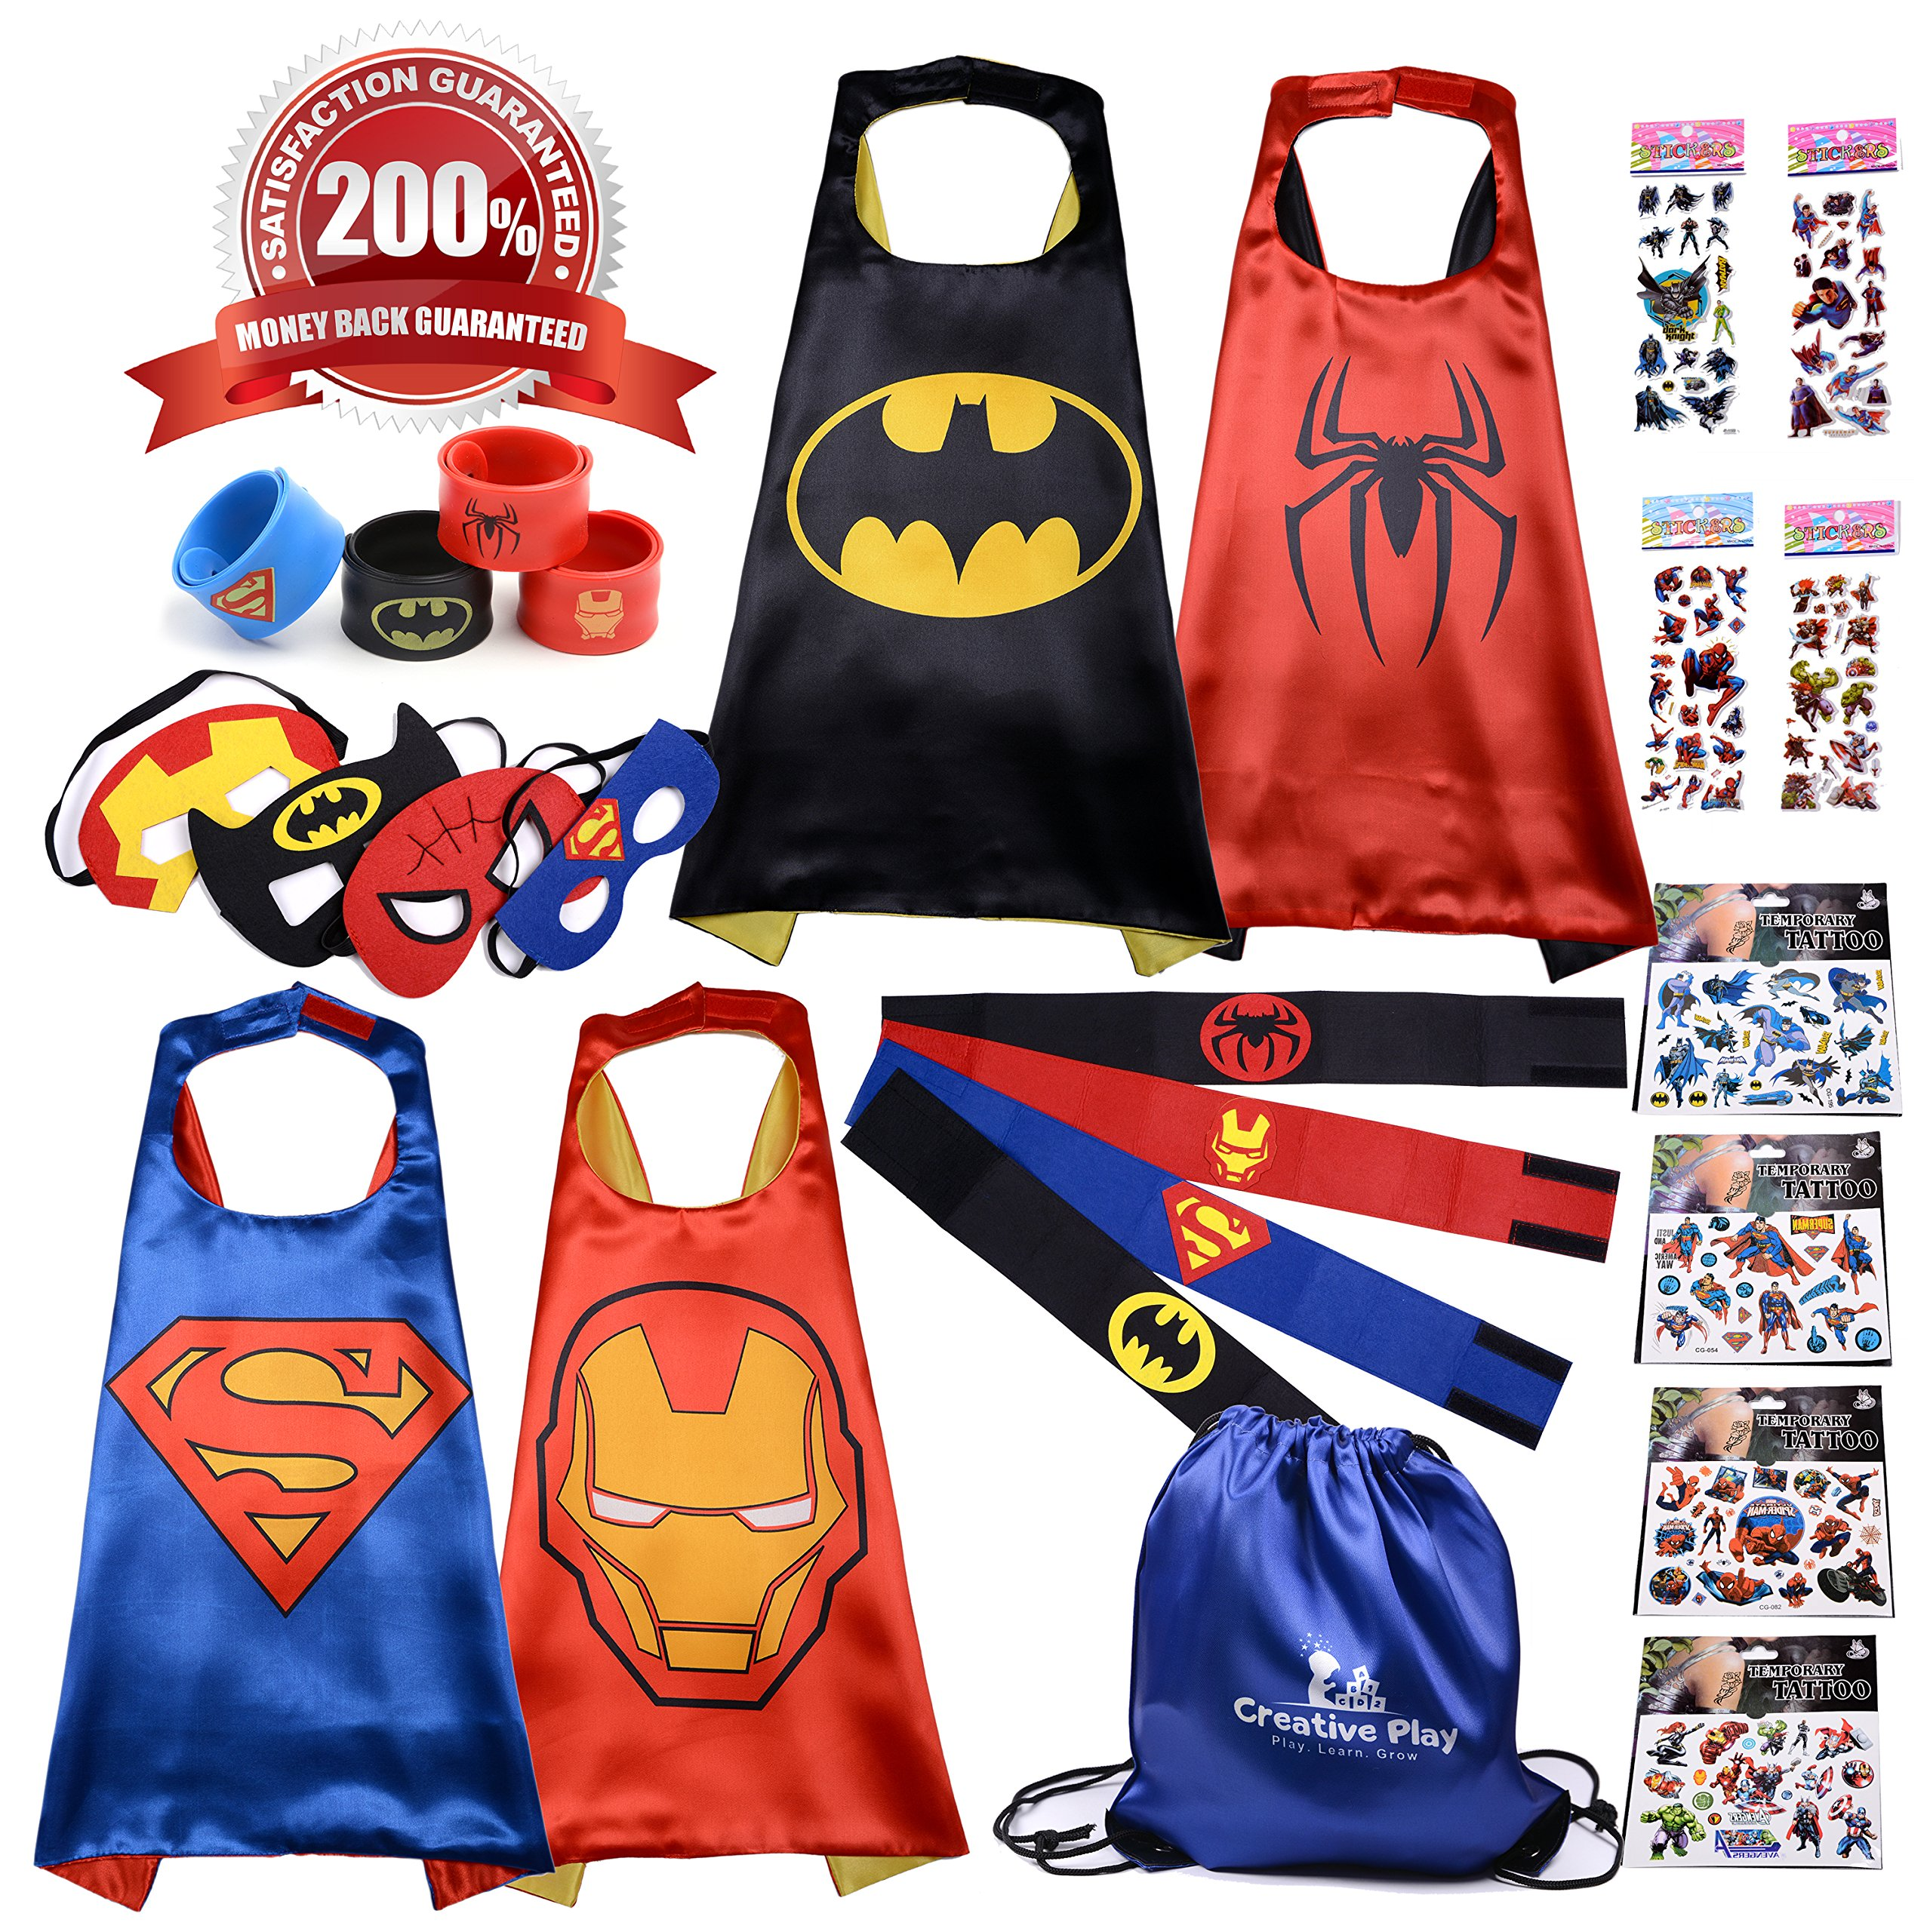 Superhero Capes for Kids | 4 x Premium Complete Costumes | Great Gift Idea